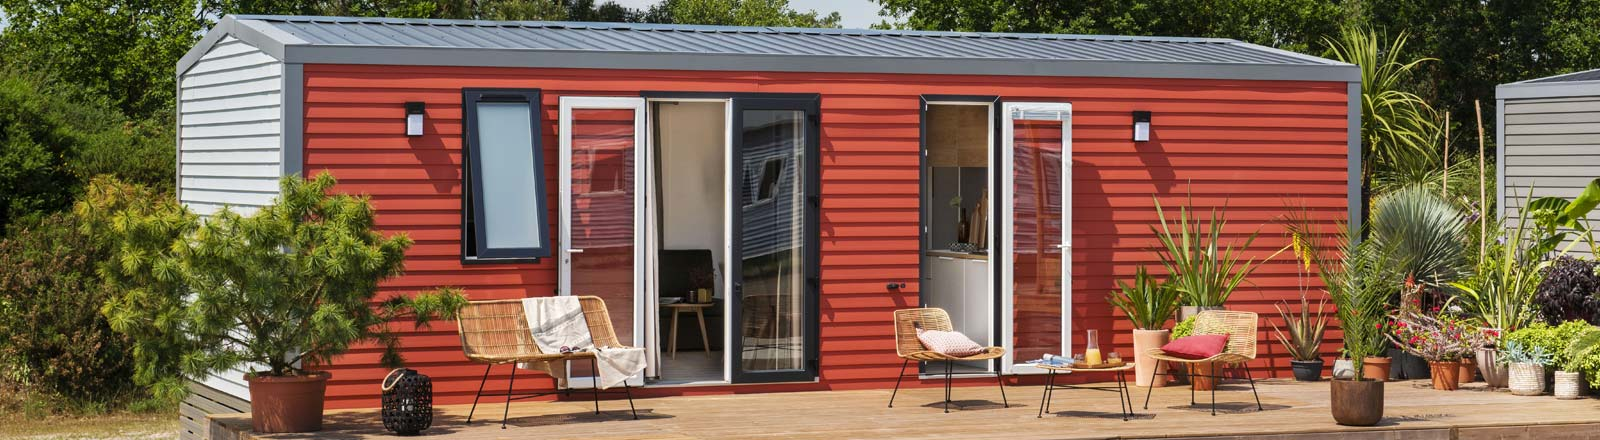 Mobile home to rent all year round in camping near the beaches in Vendée